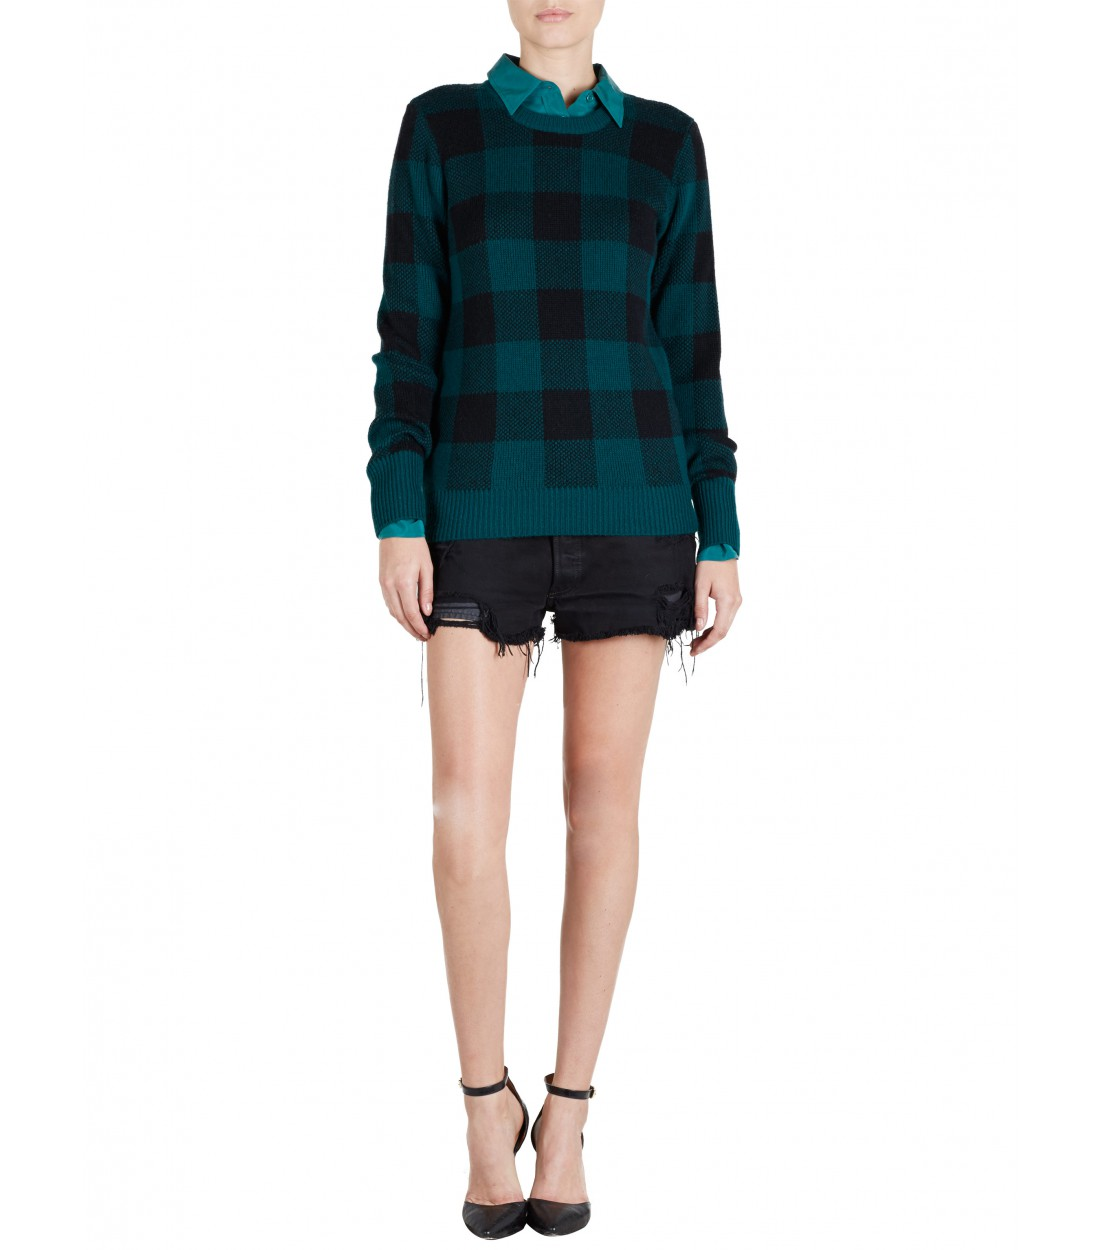 EQUIPMENT Shane Crew Pine/Black Plaid | Cashmere Sweater